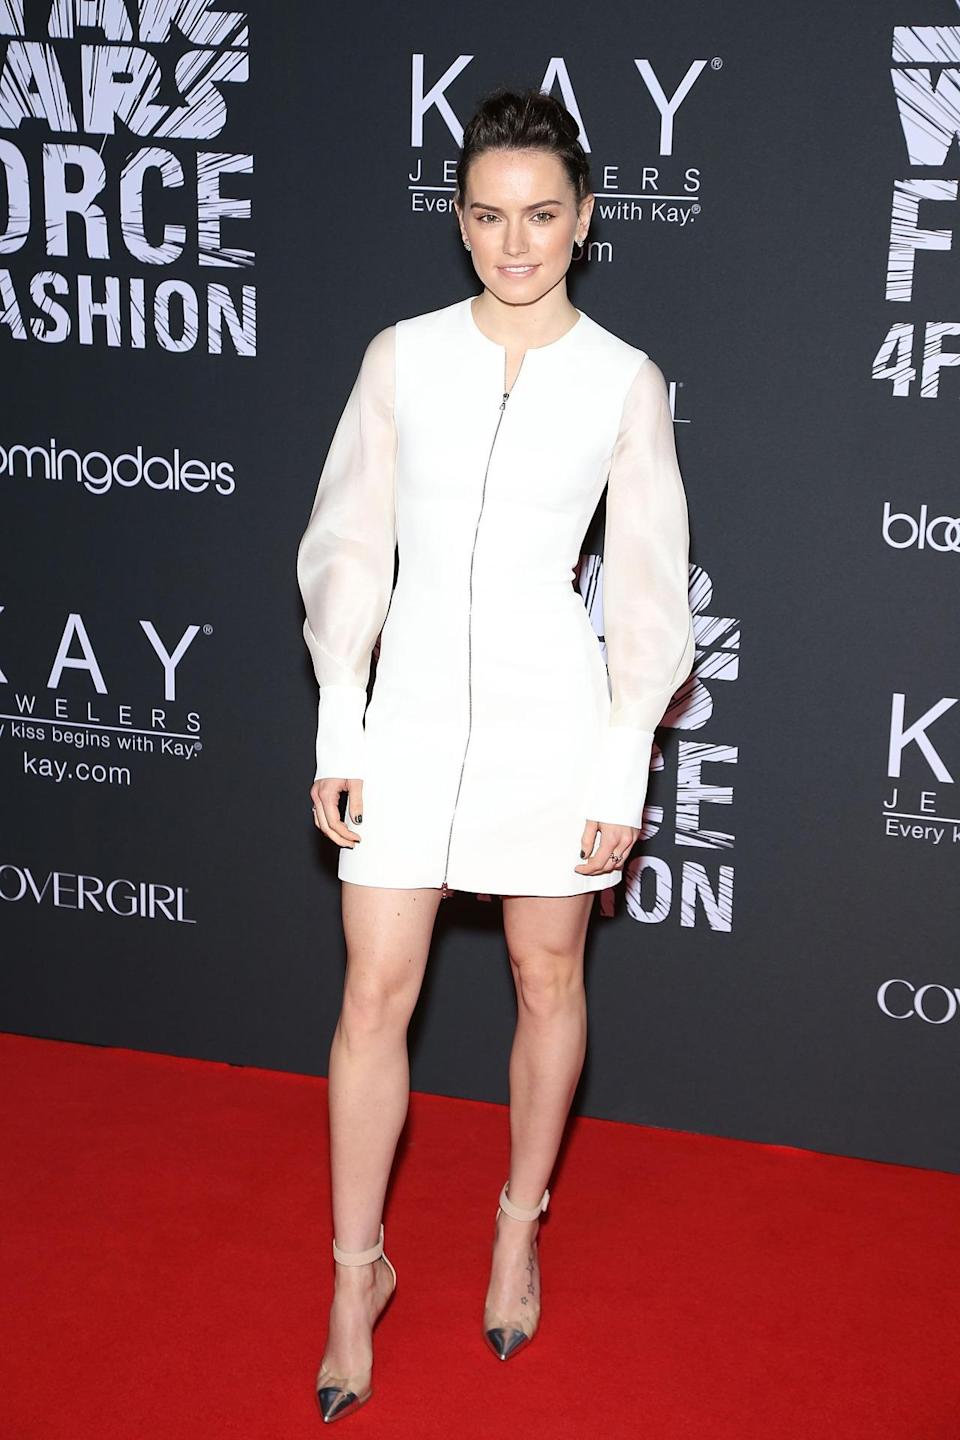 <p>Ridley's breakout role is bound to make her a household name, and is already landing her magazine covers and fashion buzz. </p><p><i>(Photo: Getty Images)</i><br></p>